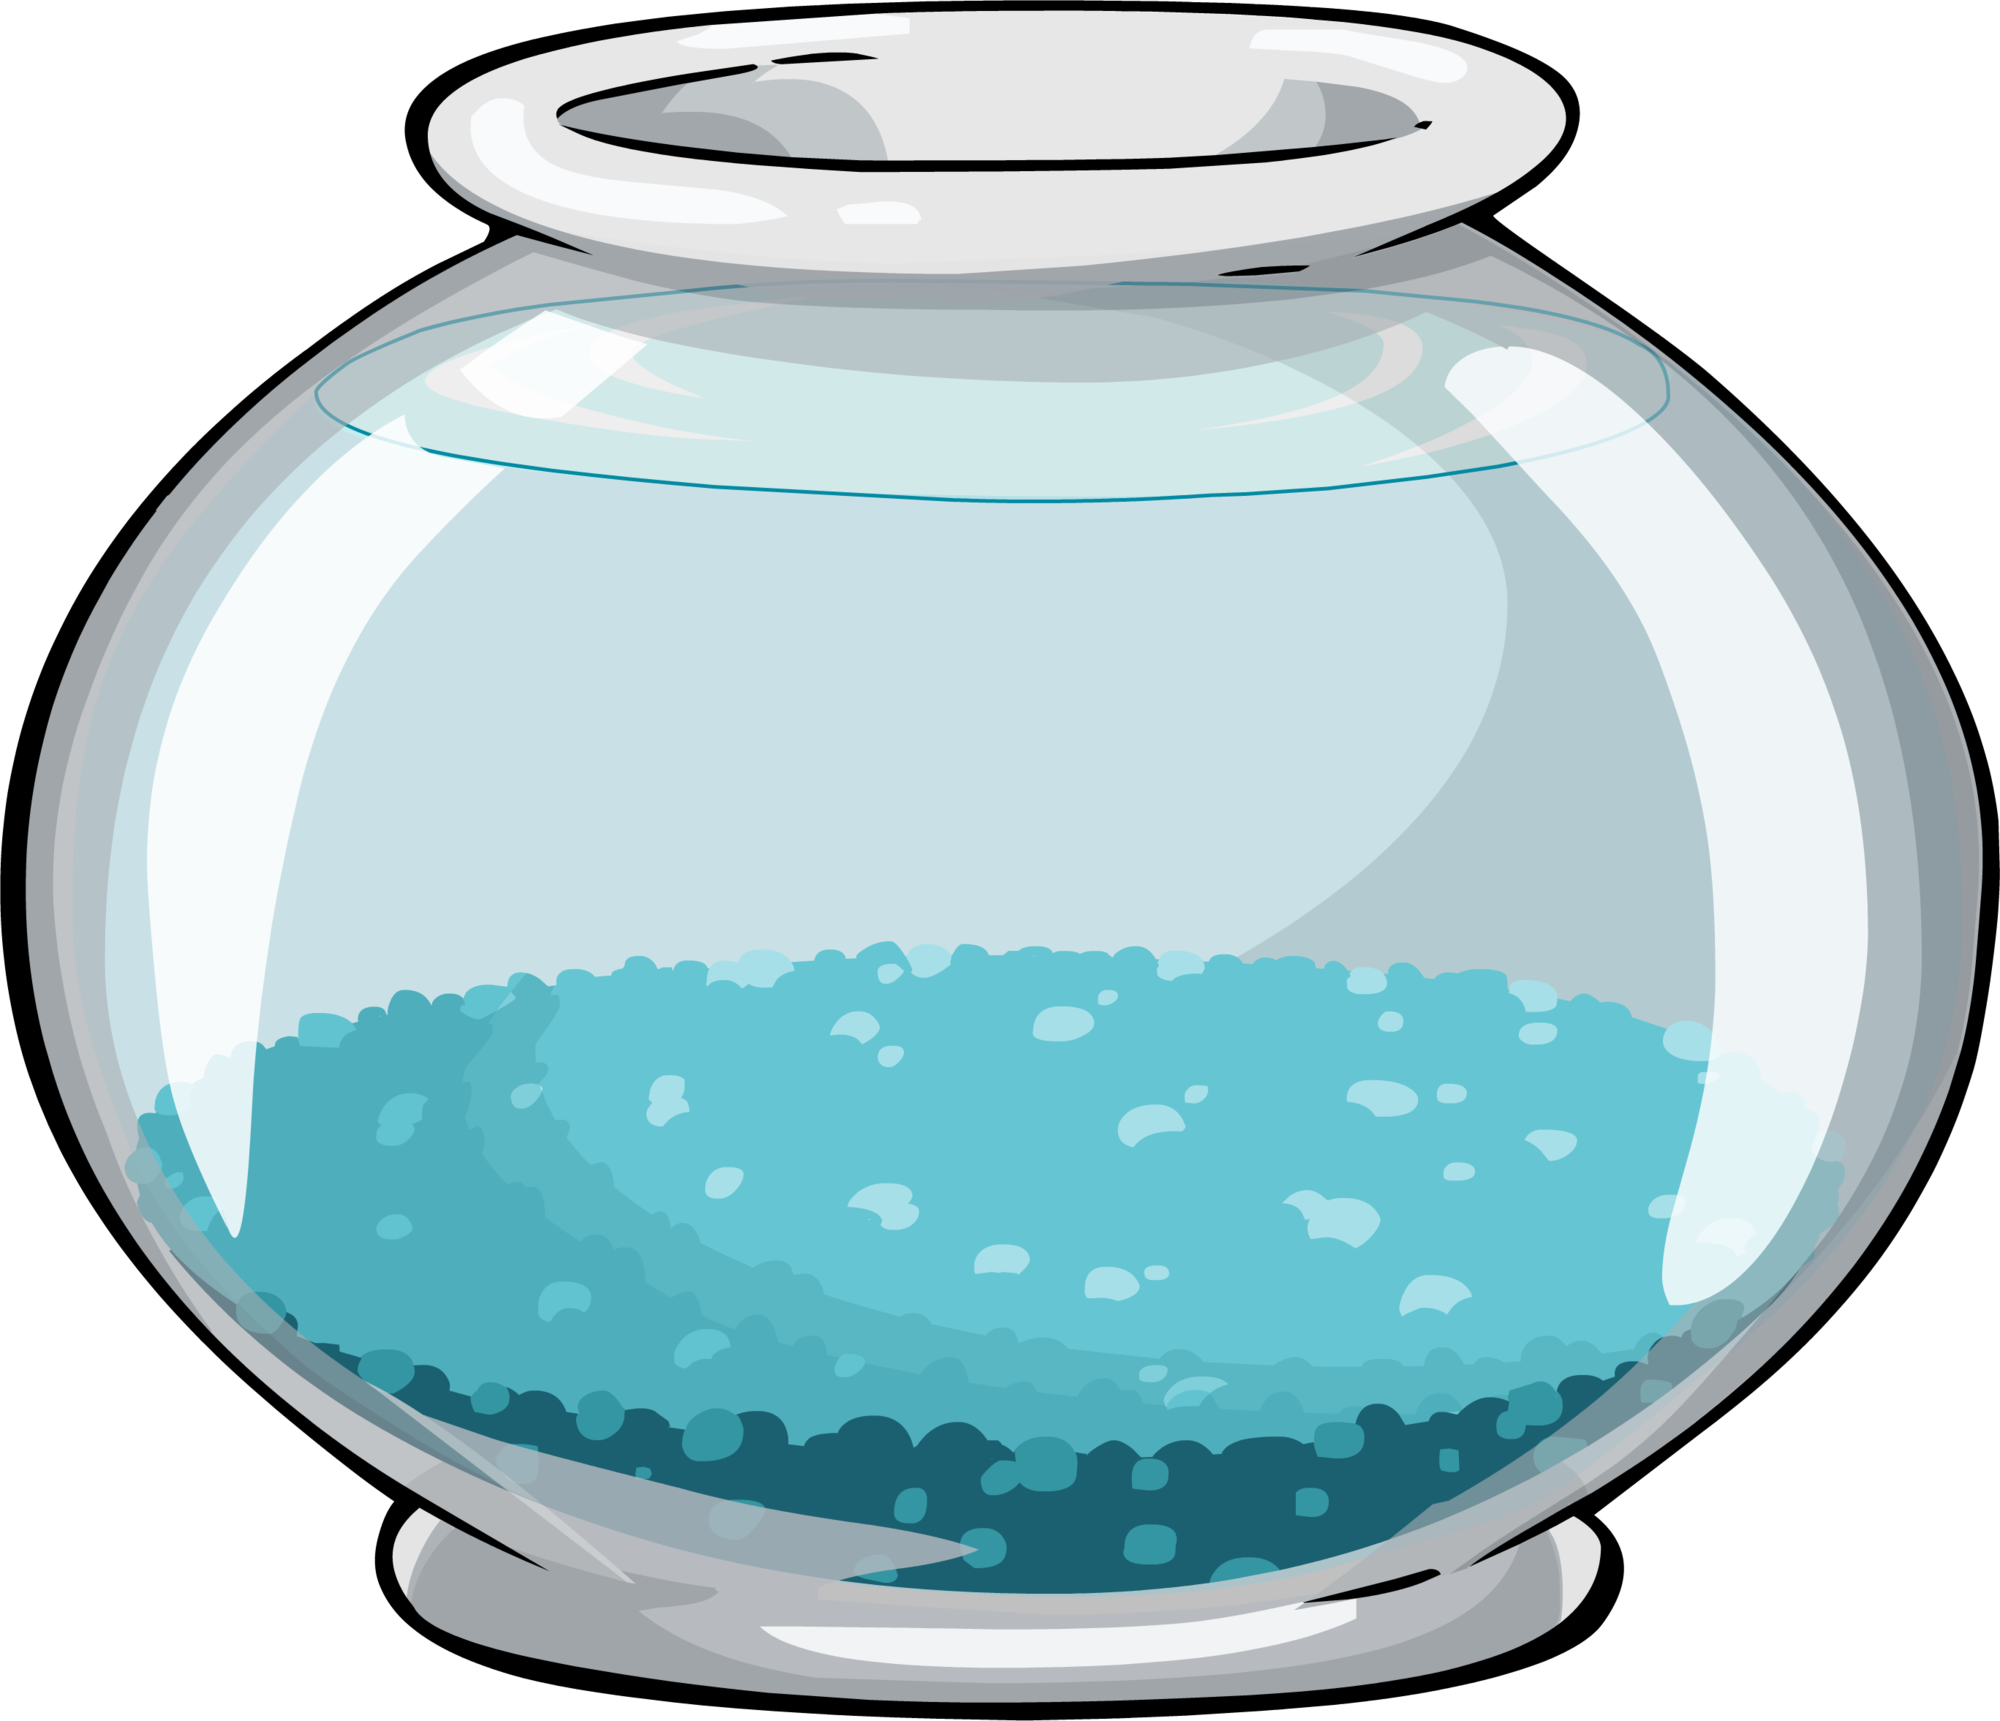 Big fish bowl clipart png royalty free library Fish Bowl Picture Free Download Clip Art - carwad.net png royalty free library